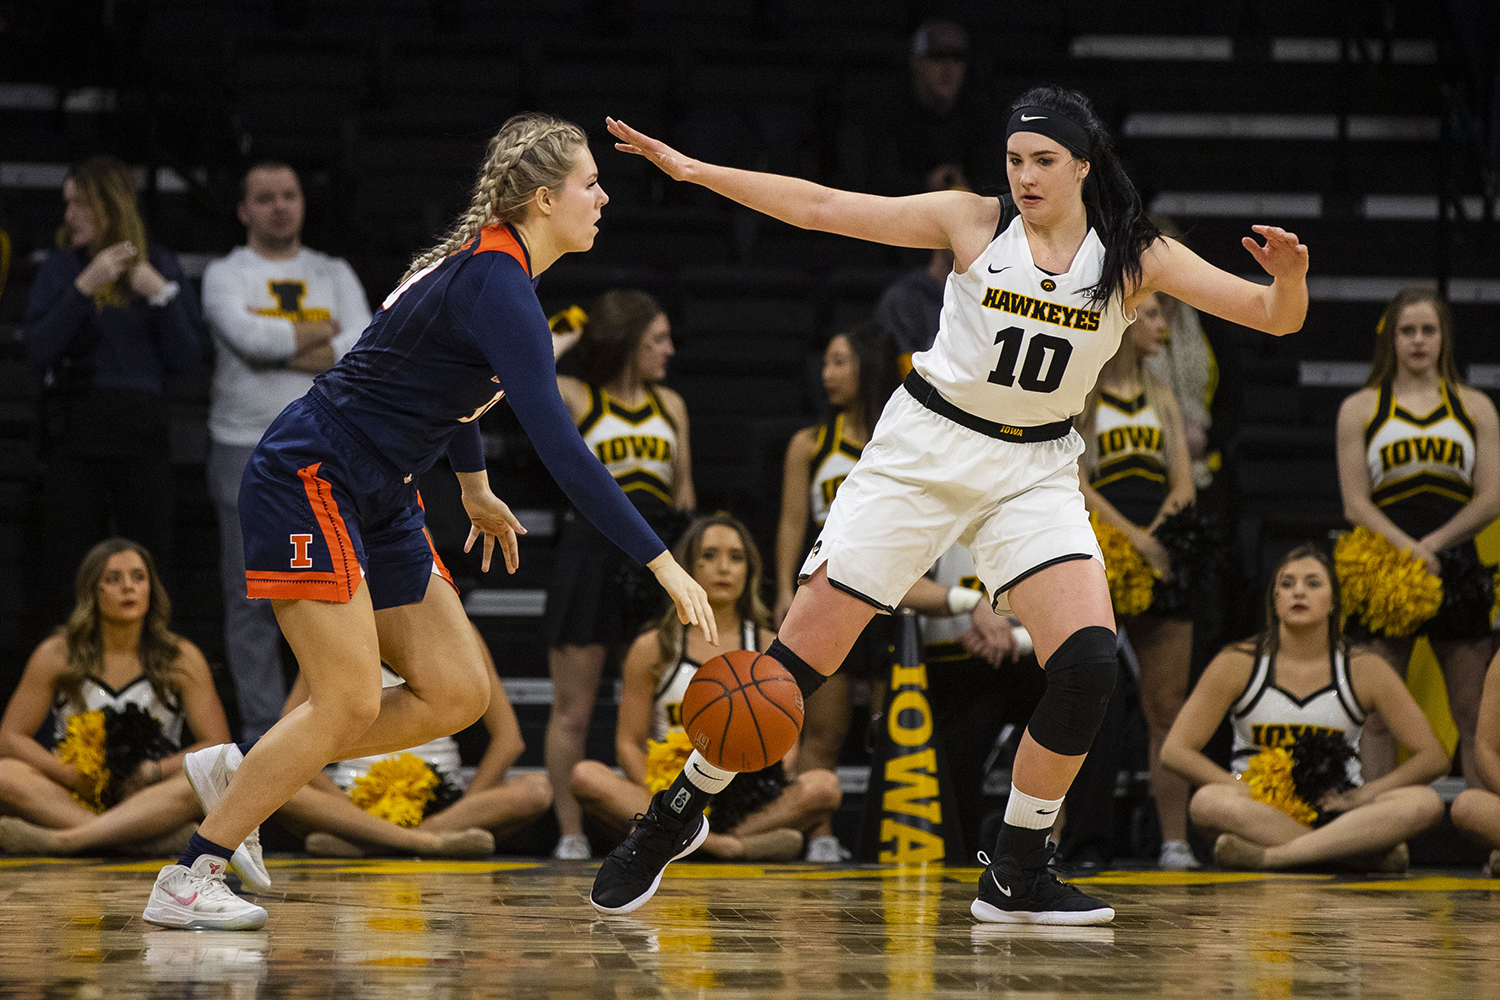 Iowa+center+Megan+Gustafson+guards+Illinois+forward+Ali+Andrews+during+the+Iowa%2FIllinois+women%27s+basketball+game+at+Carver-Hawkeye+Arena+on+Thursday%2C+February+14%2C+2019.+The+Hawkeyes+defeated+the+Fighting+Illini%2C+88-66.+